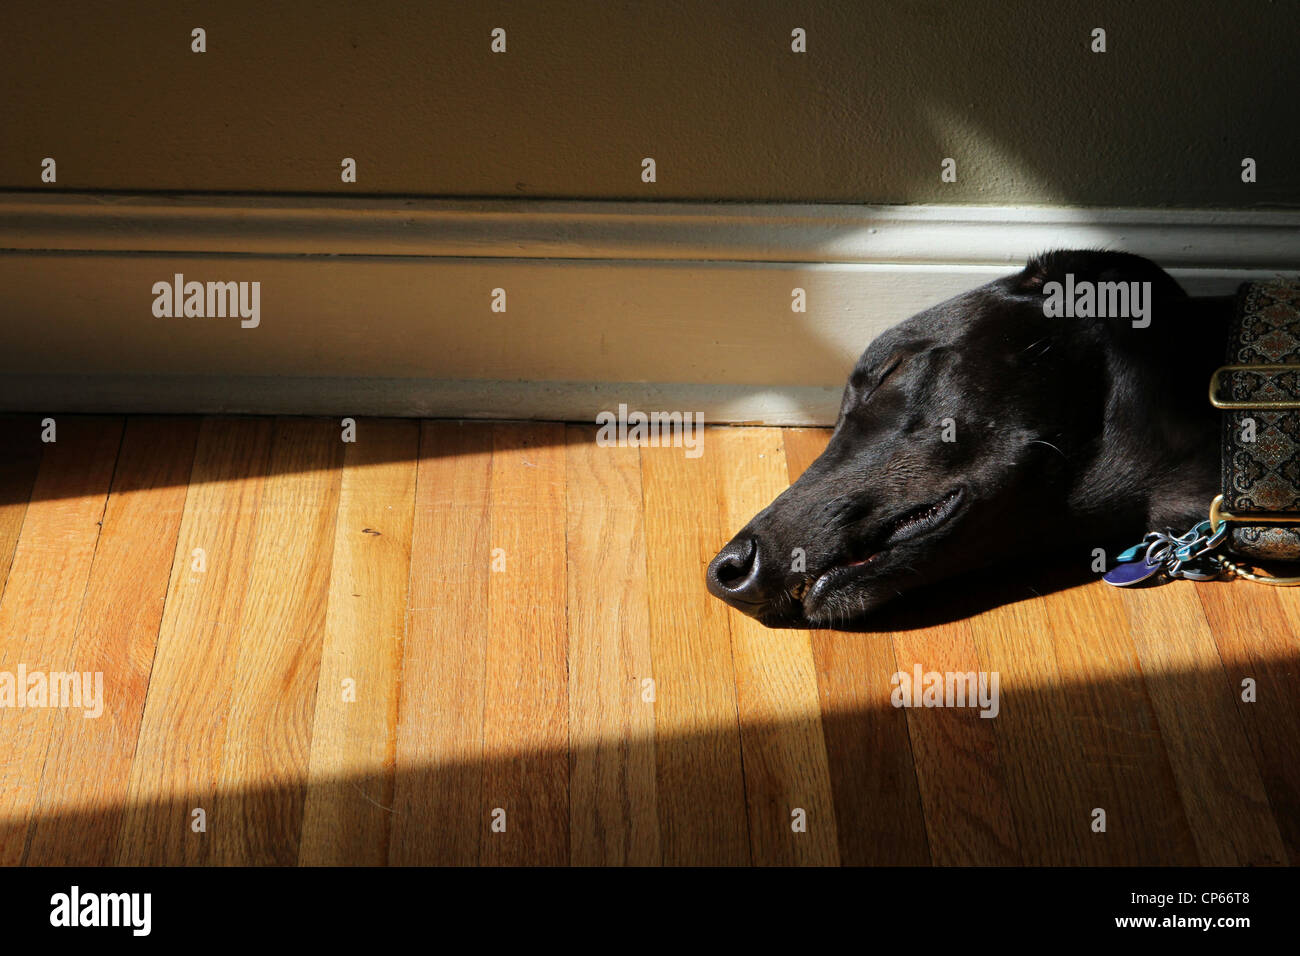 A greyhound dog sleeping in a ray of sun on the floor. - Stock Image